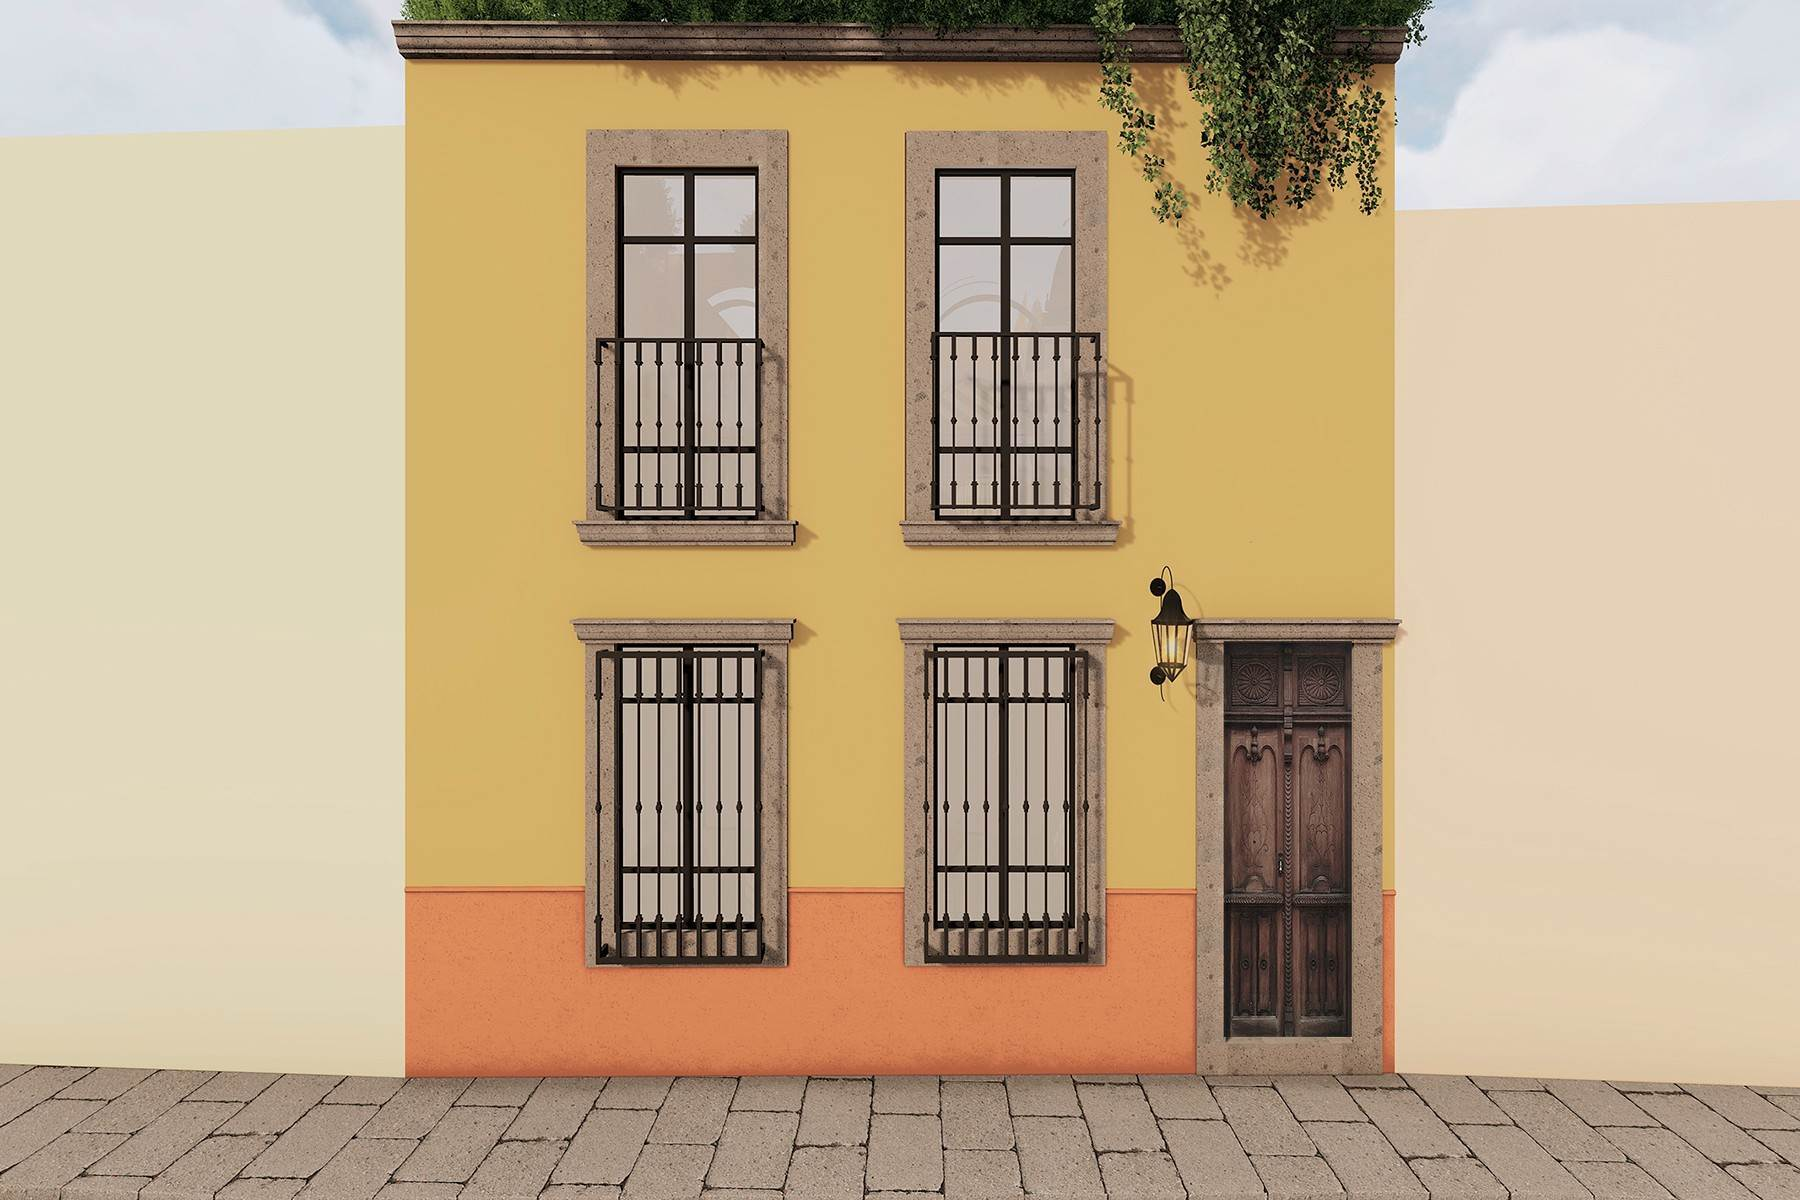 18. Condominiums for Sale at Condos Quebrada Quebrada 121 B San Miguel De Allende, Guanajuato 37700 Mexico